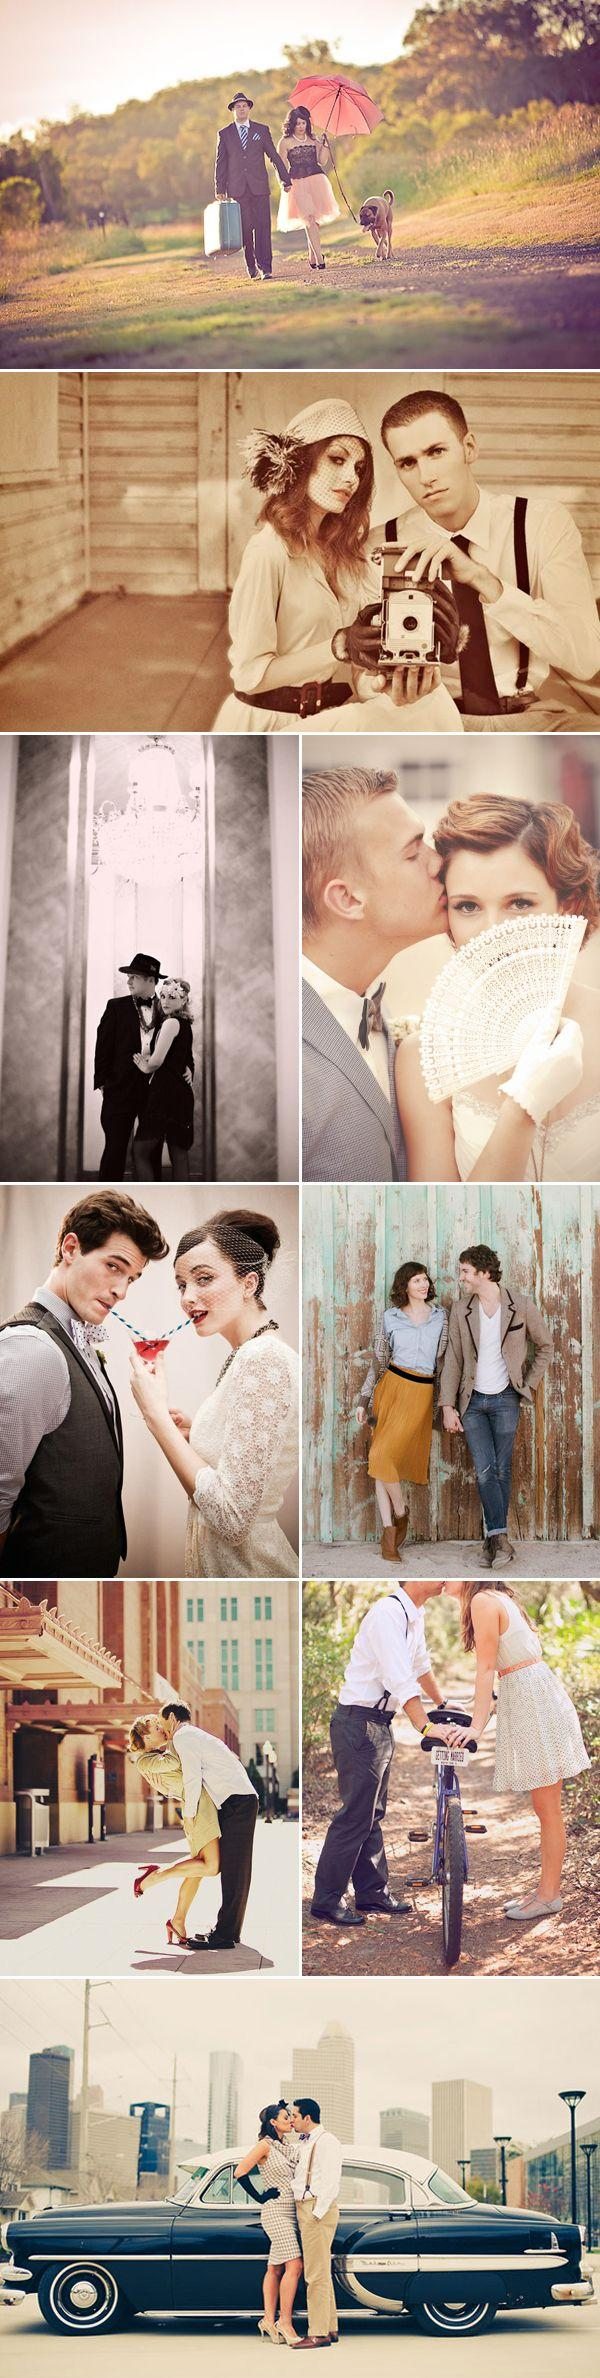 Mariage - 26 Beautiful Vintage-Inspired Engagement Photos